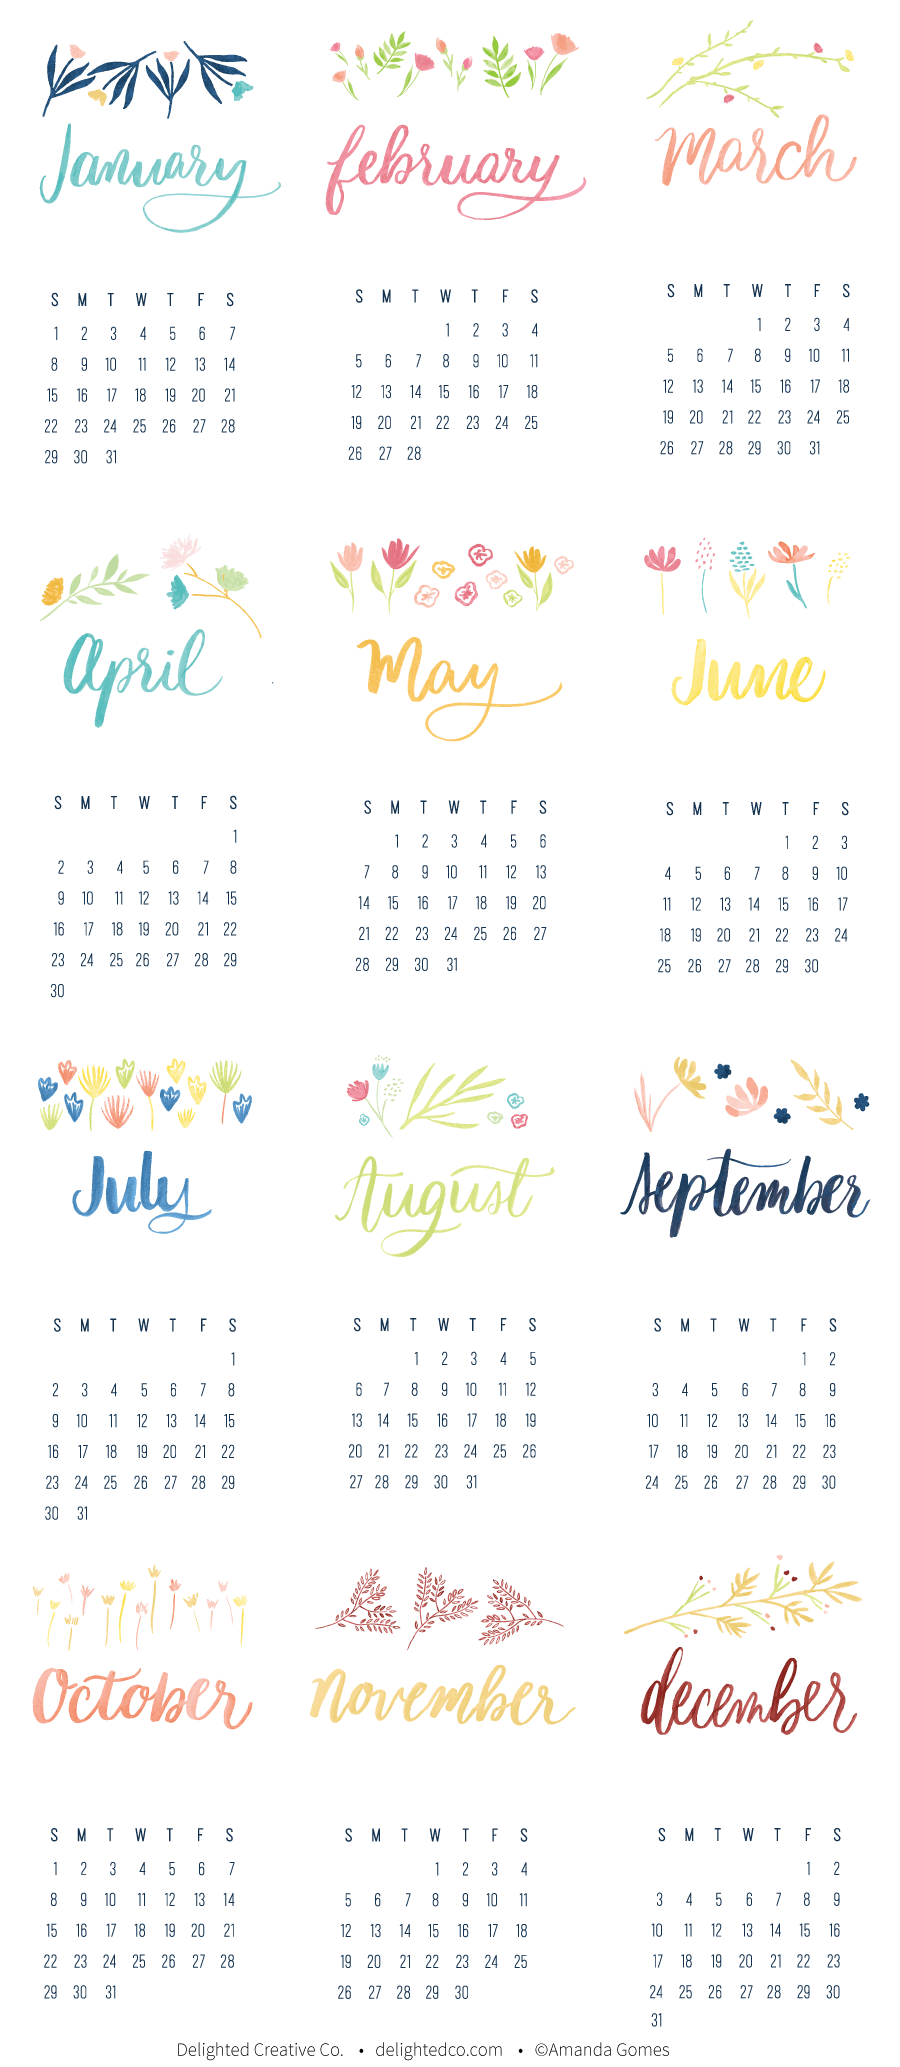 Free 2017 Calendar with Watercolor Florals. Download, print and enjoy! Via Delighted Creative Co  •  delightedco.com